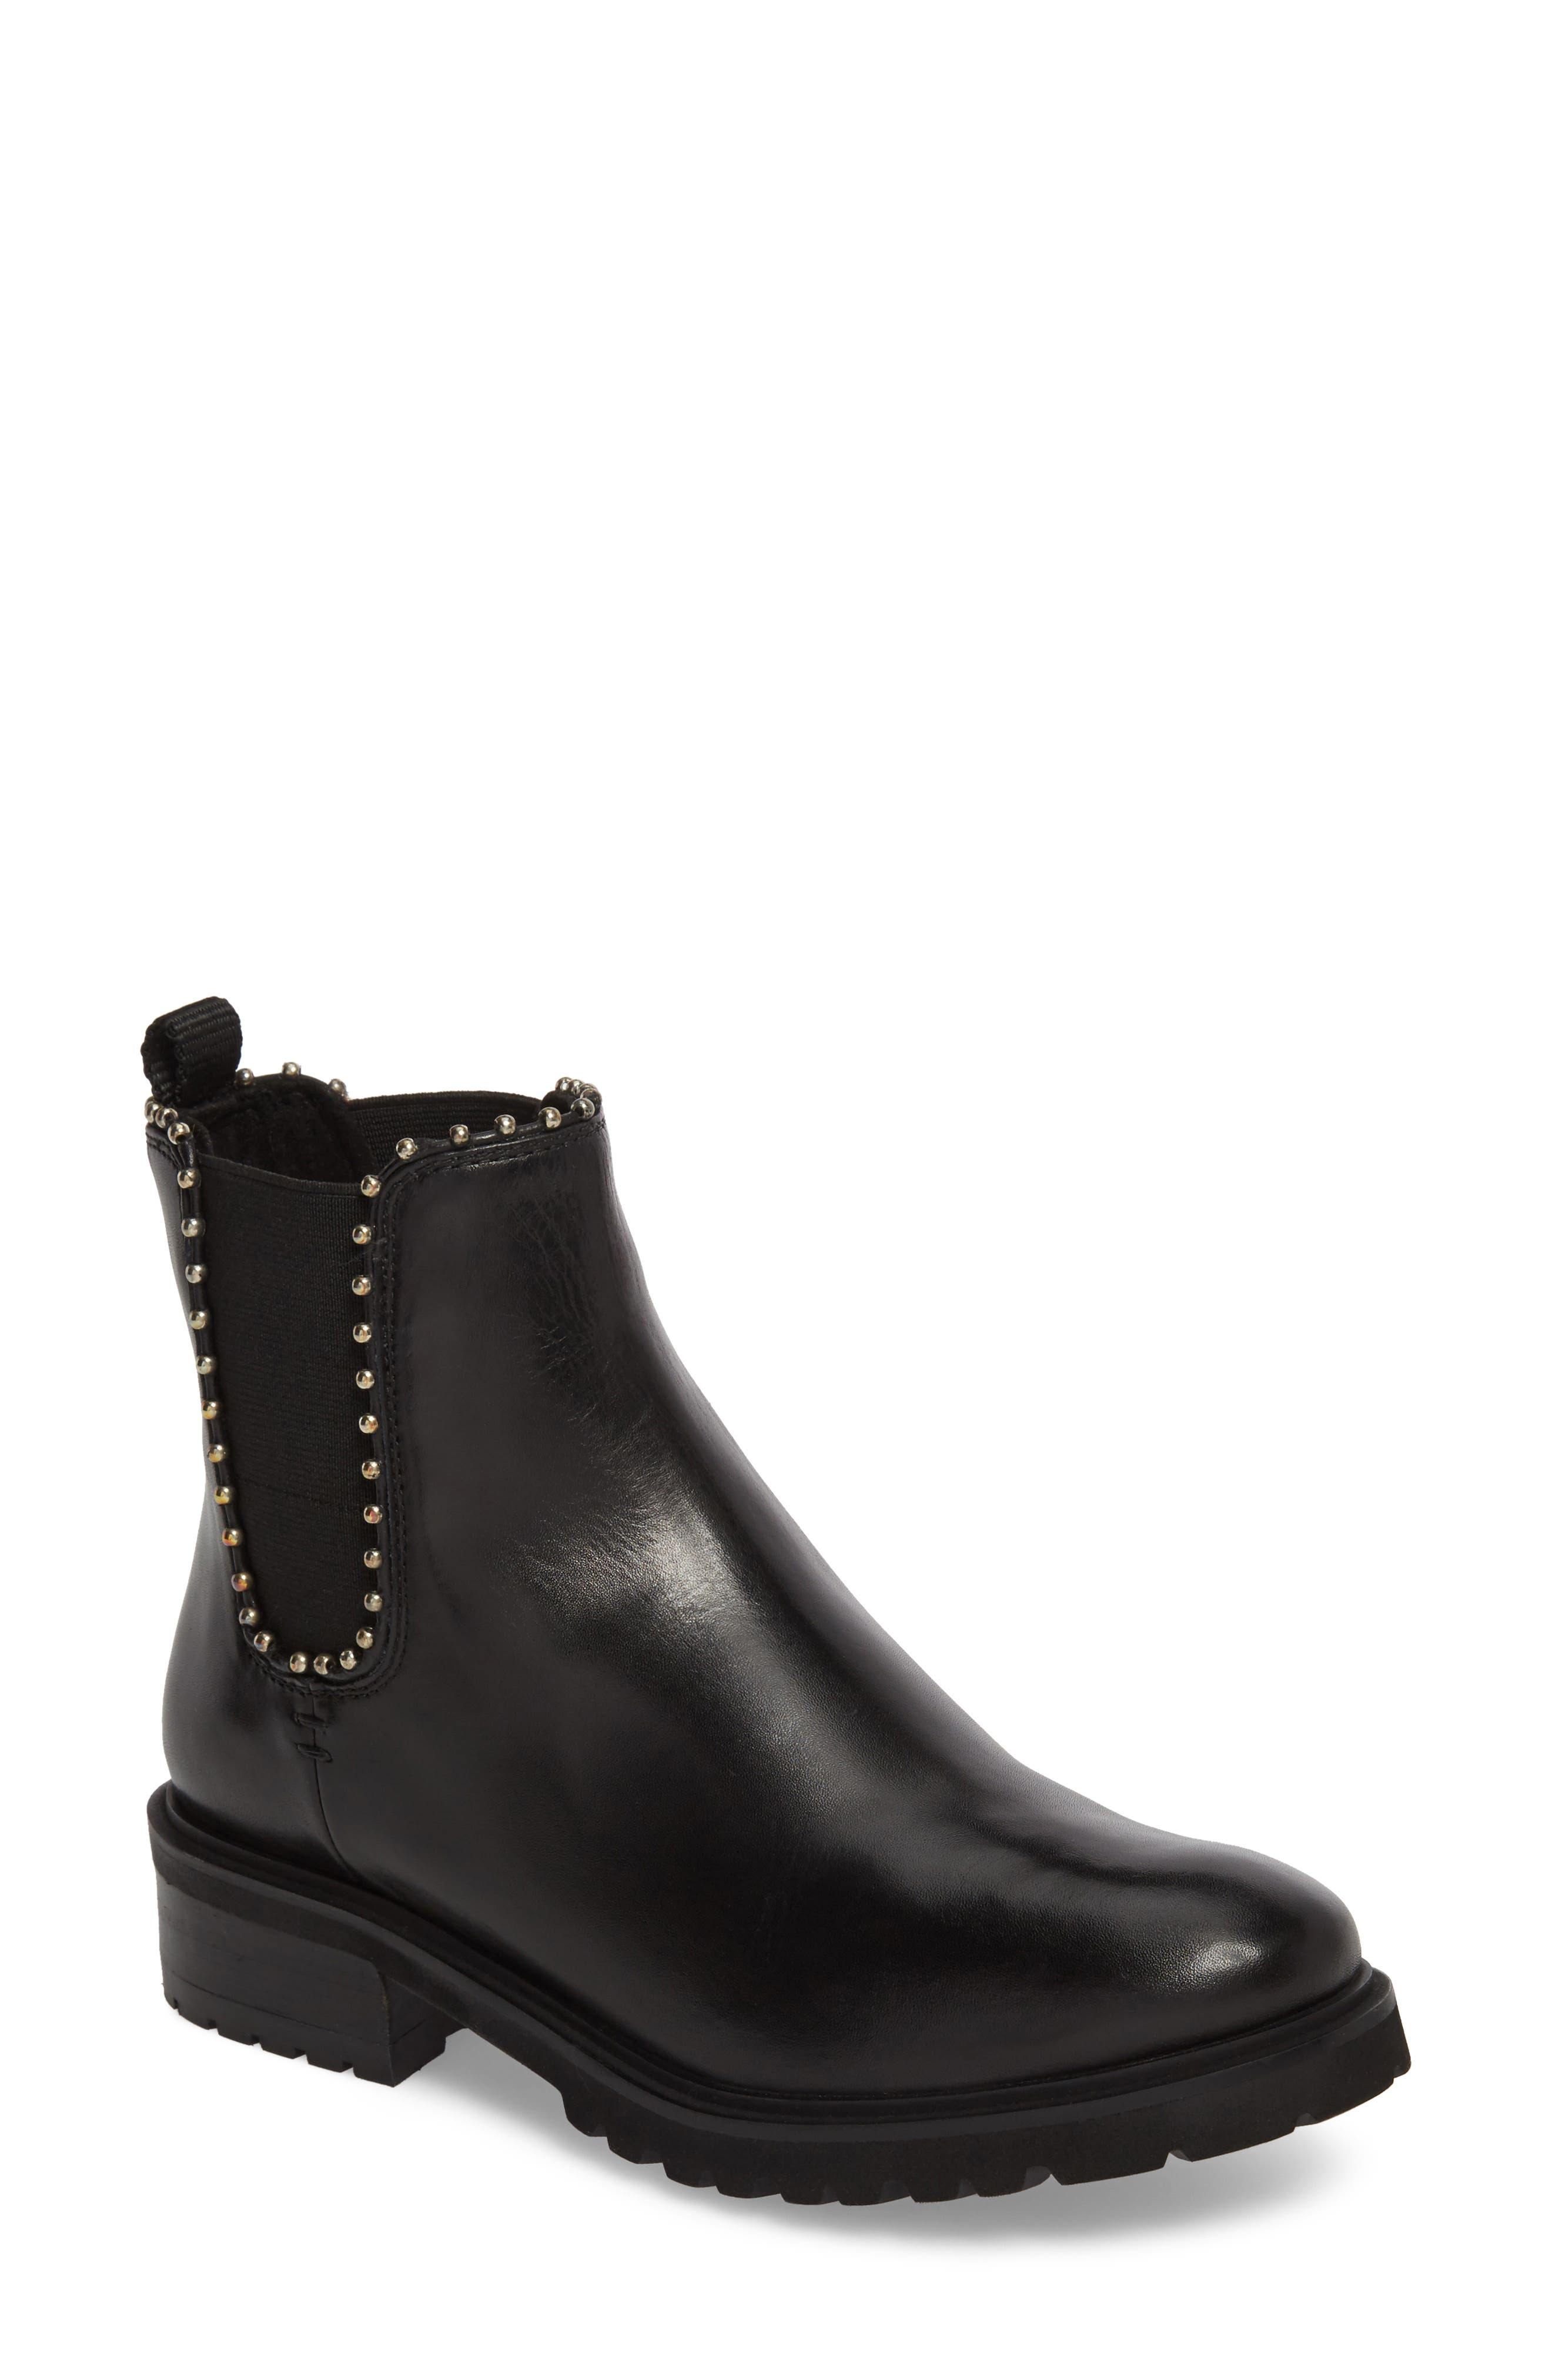 Berkley Chelsea Bootie,                         Main,                         color, Black Leather